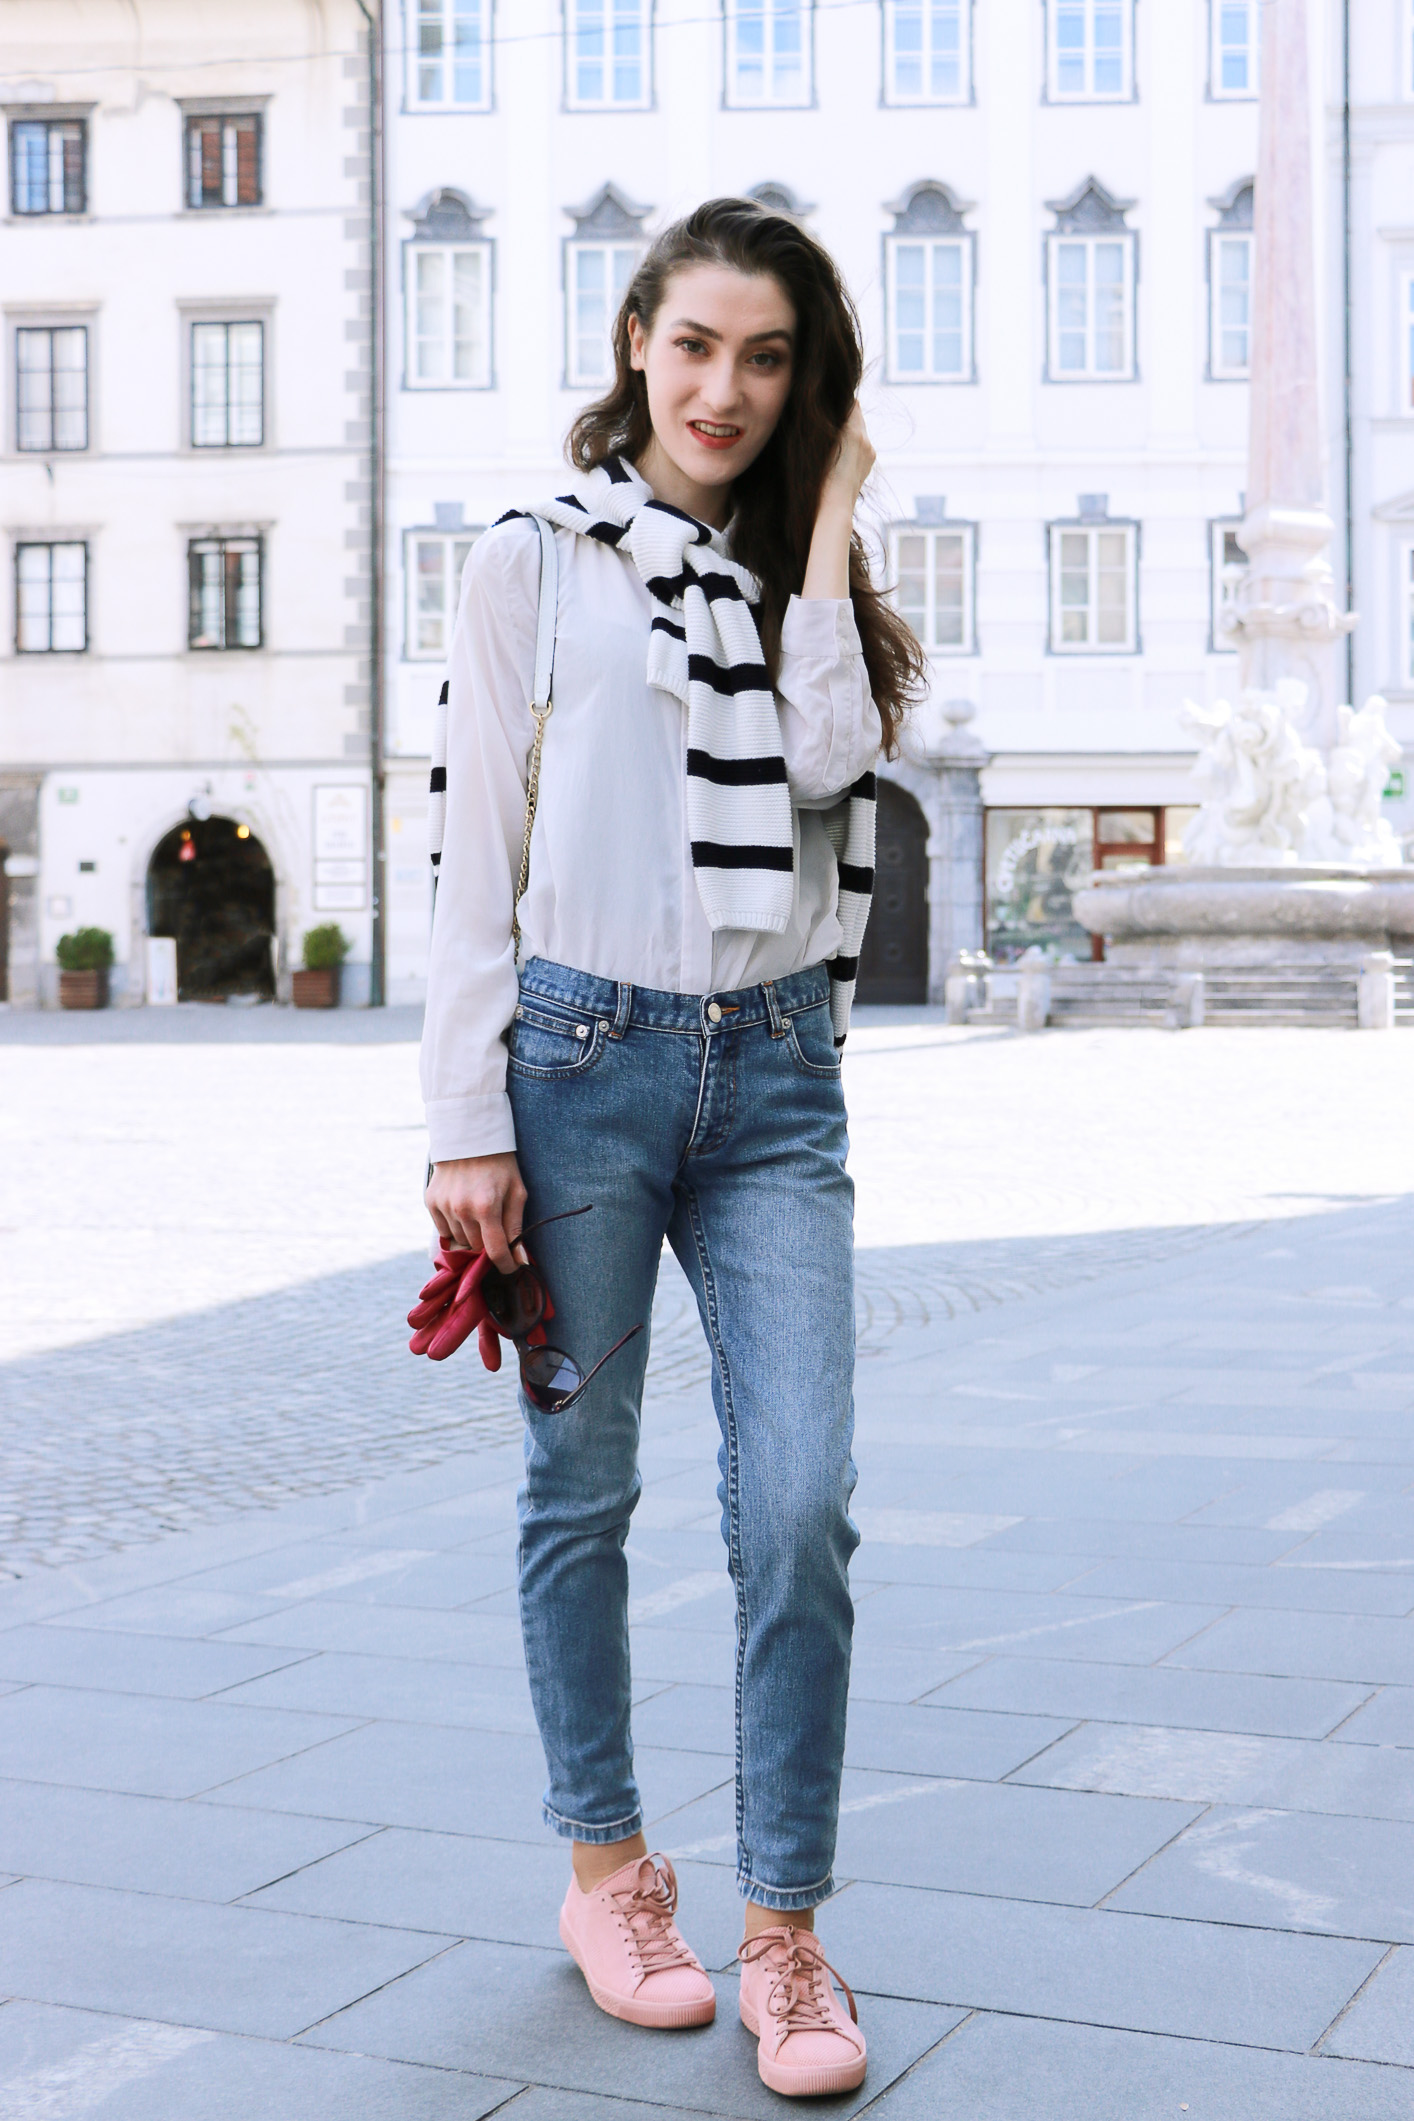 Fashion blogger Veronika Lipar of Brunette From Wall Street sharing her casual chic weekend style to wear this spring